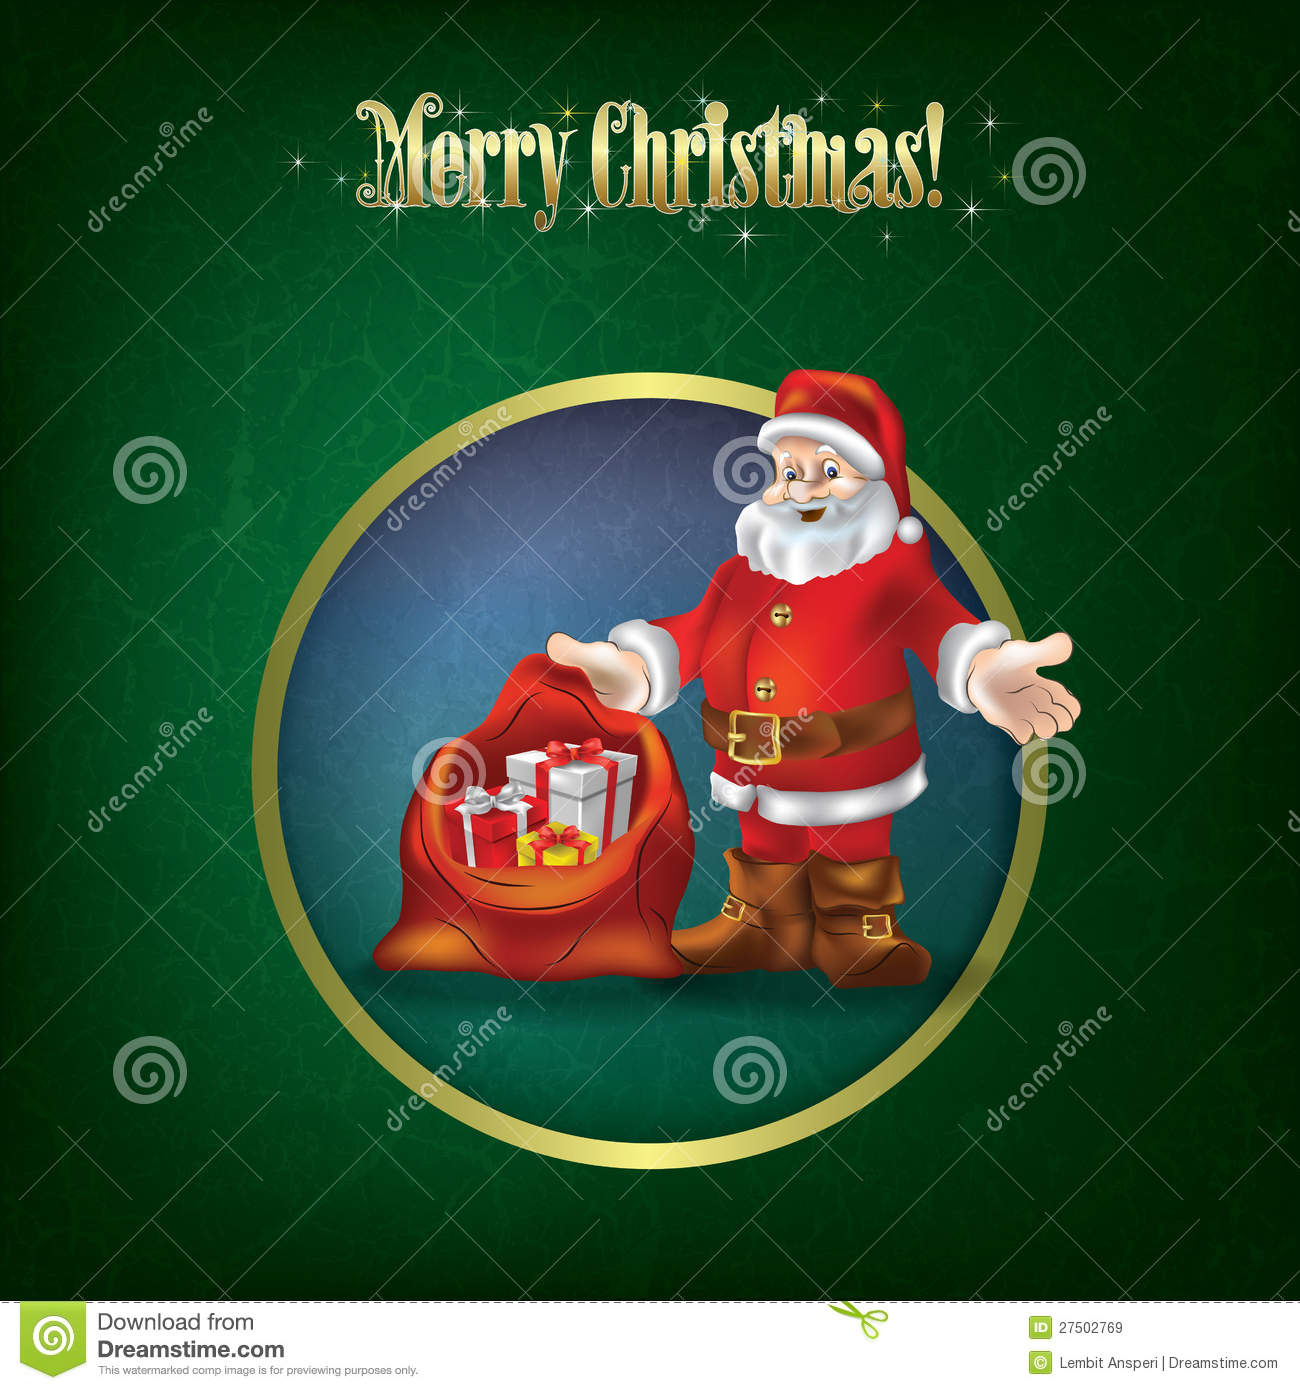 Christmas grunge greeting with santa claus royalty free